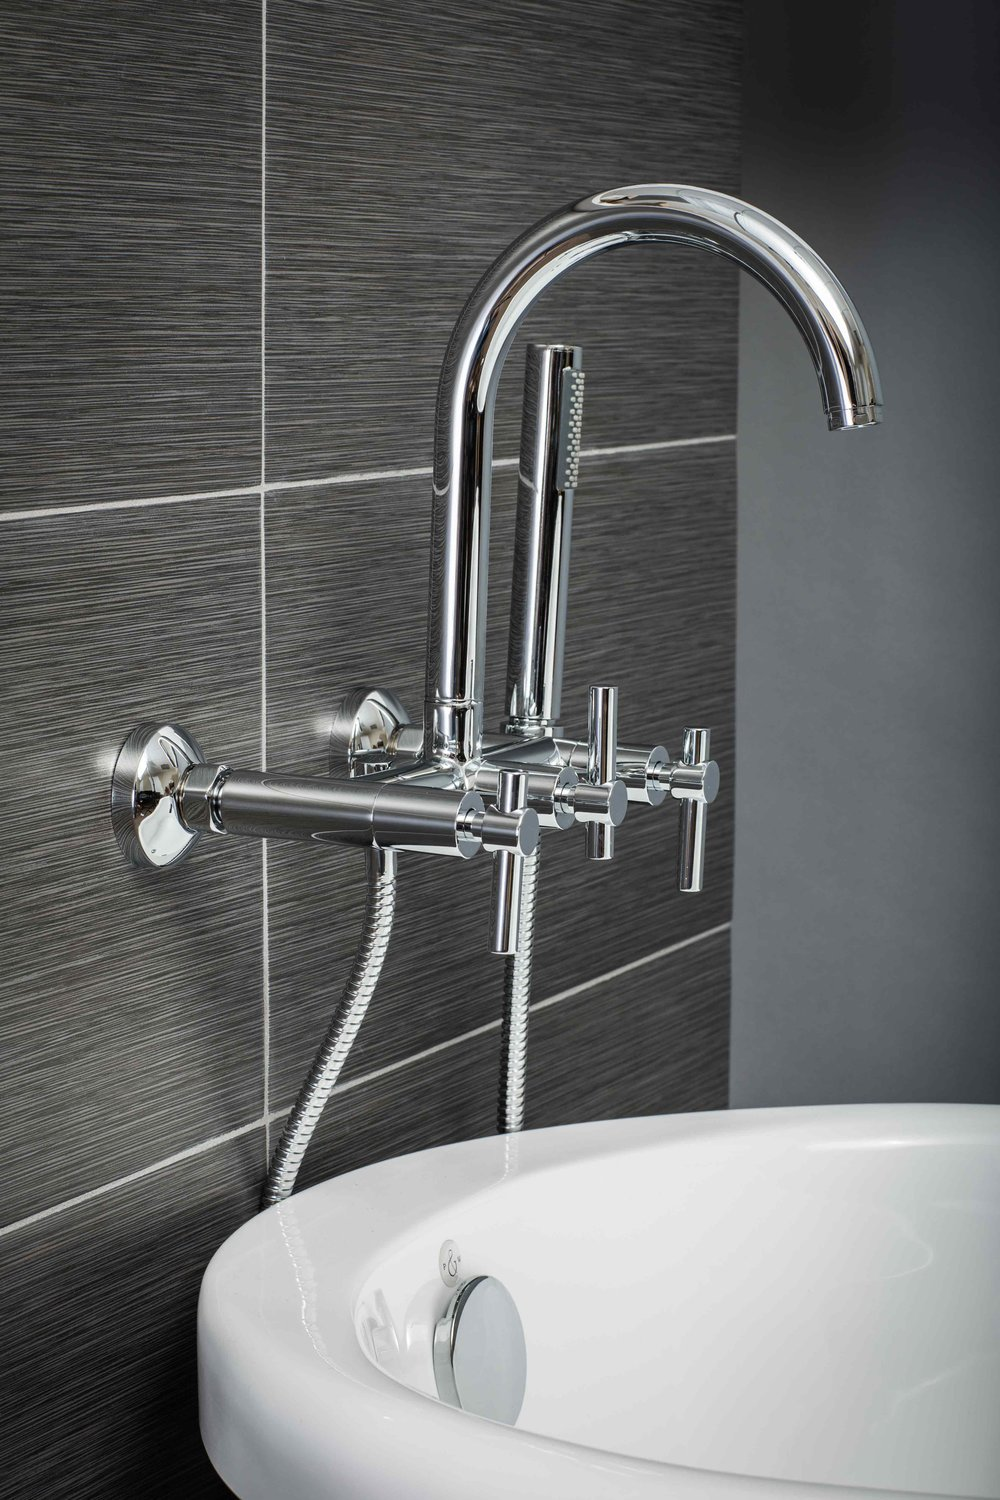 Contemporary Wall Mount Tub Filler Faucet in Chrome with Levers ...